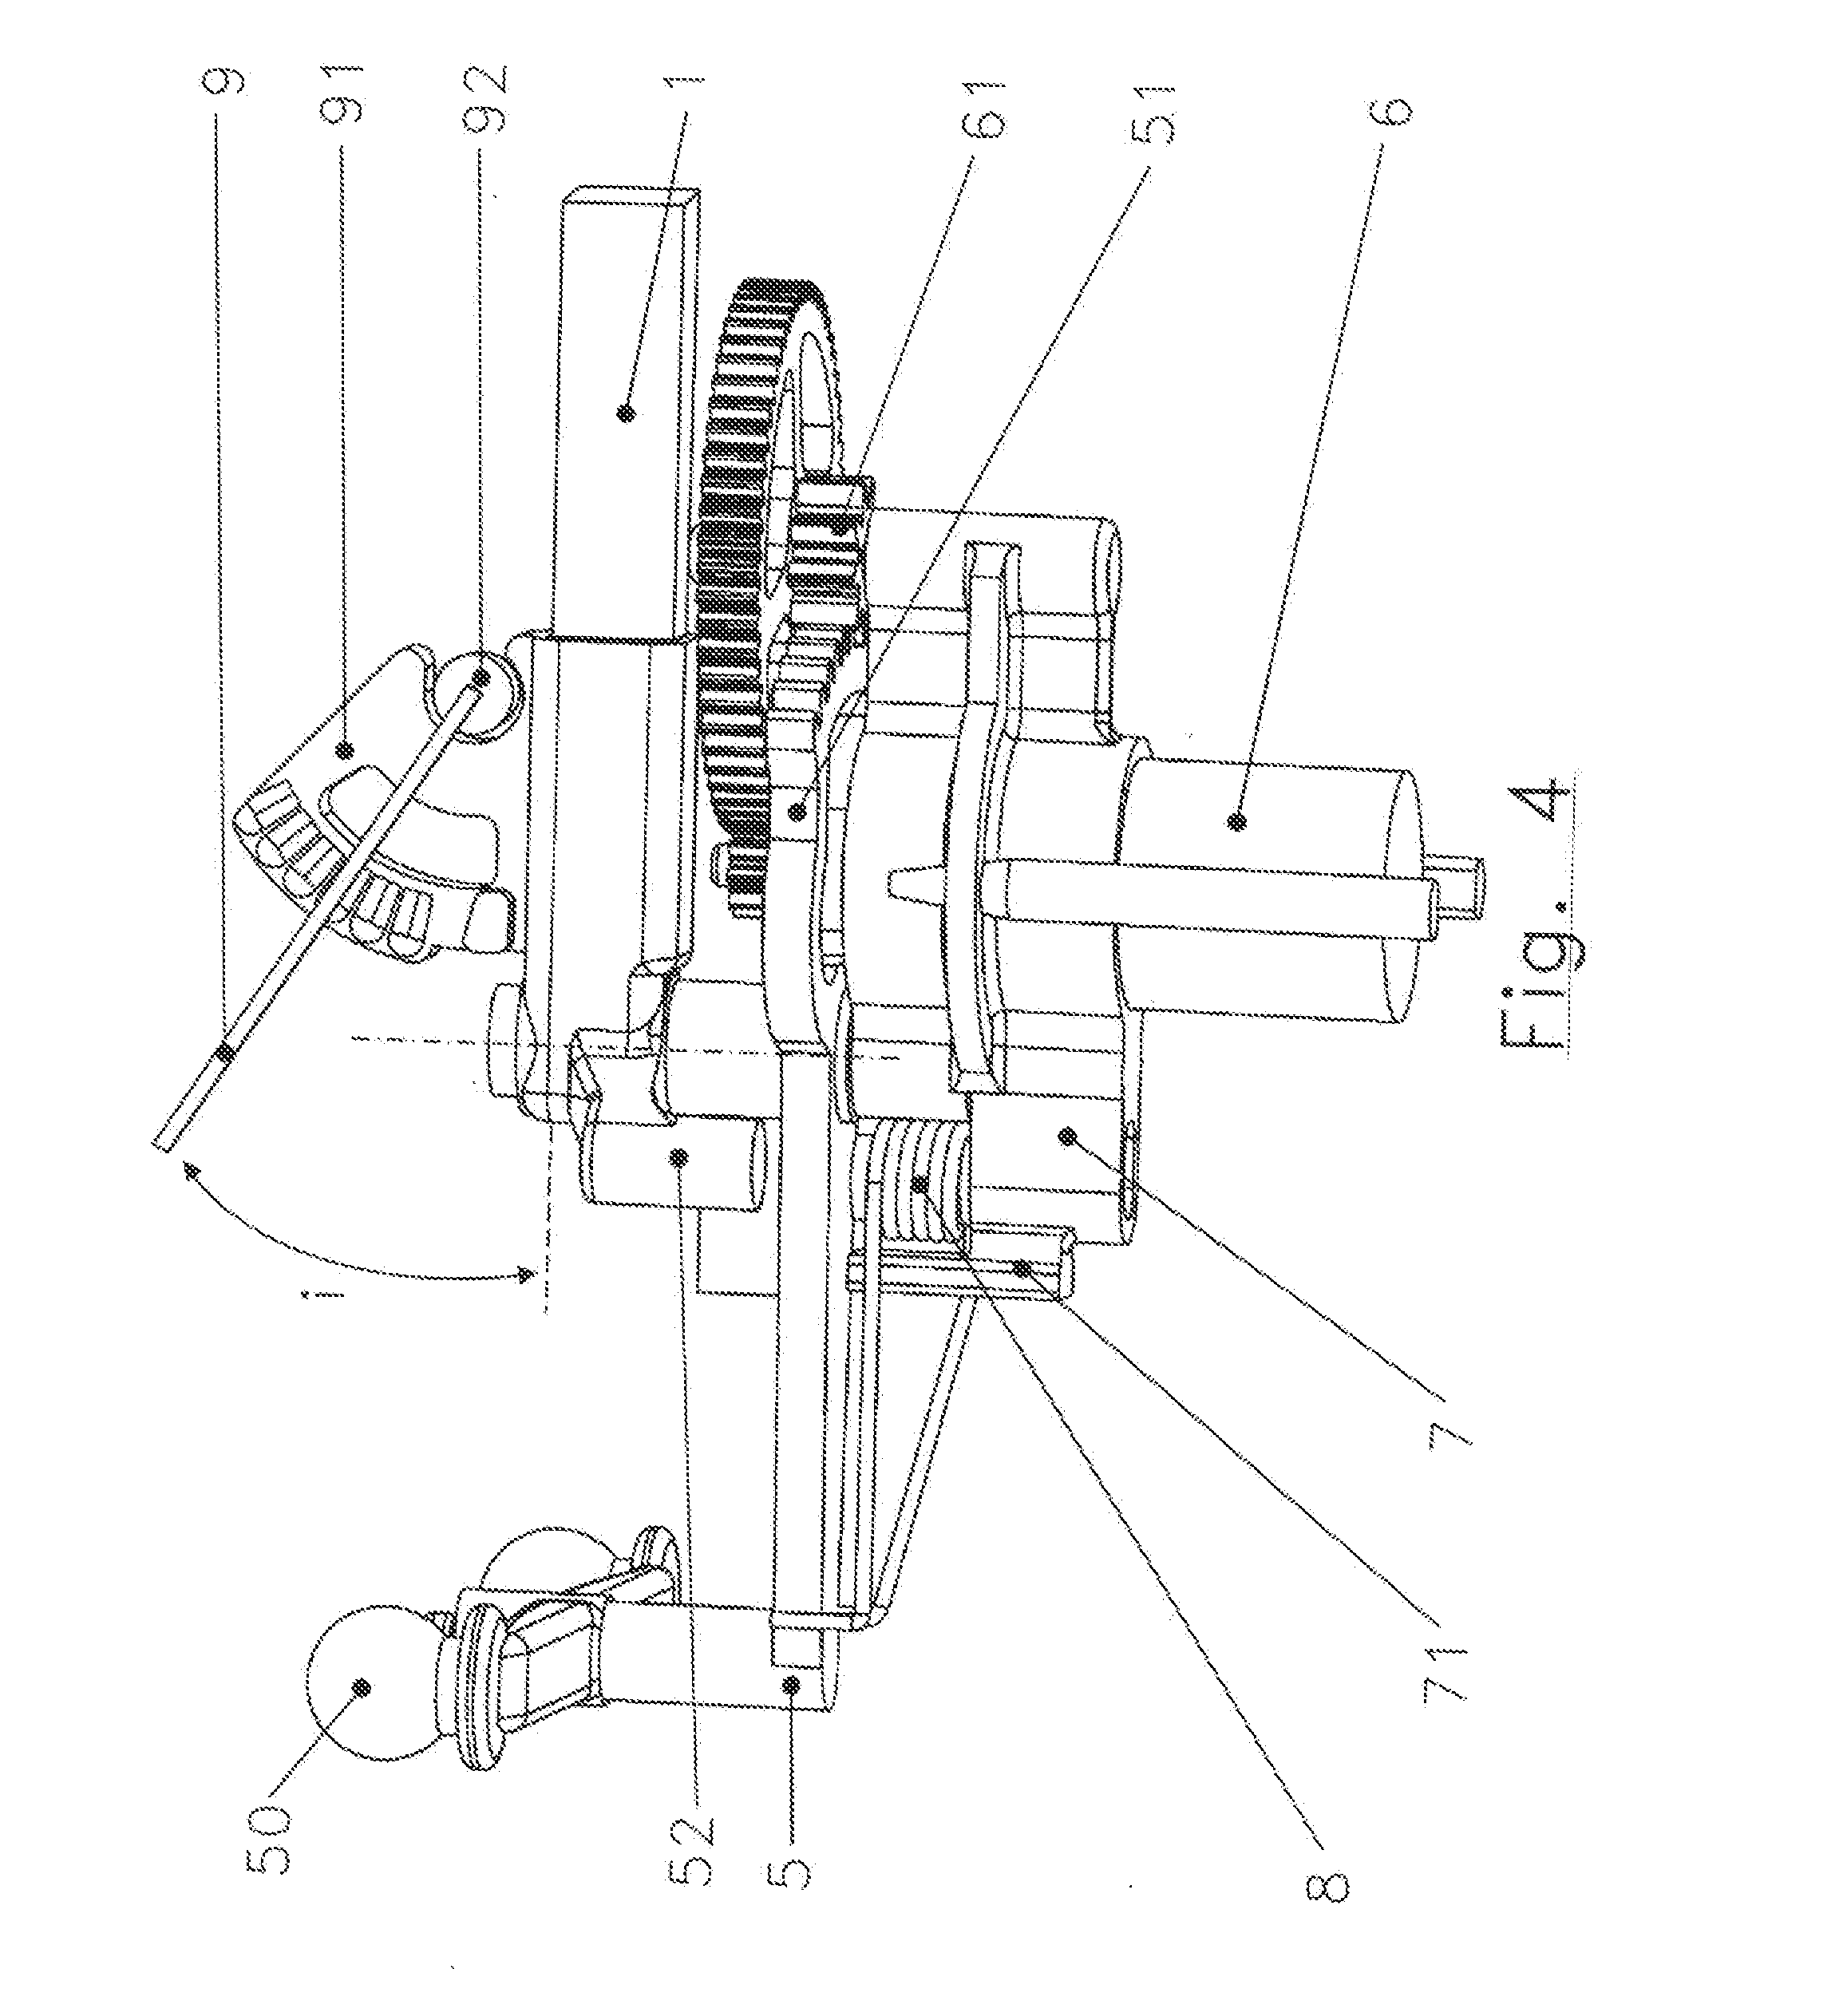 1995 Chevy Lumina Rear Suspension Diagram